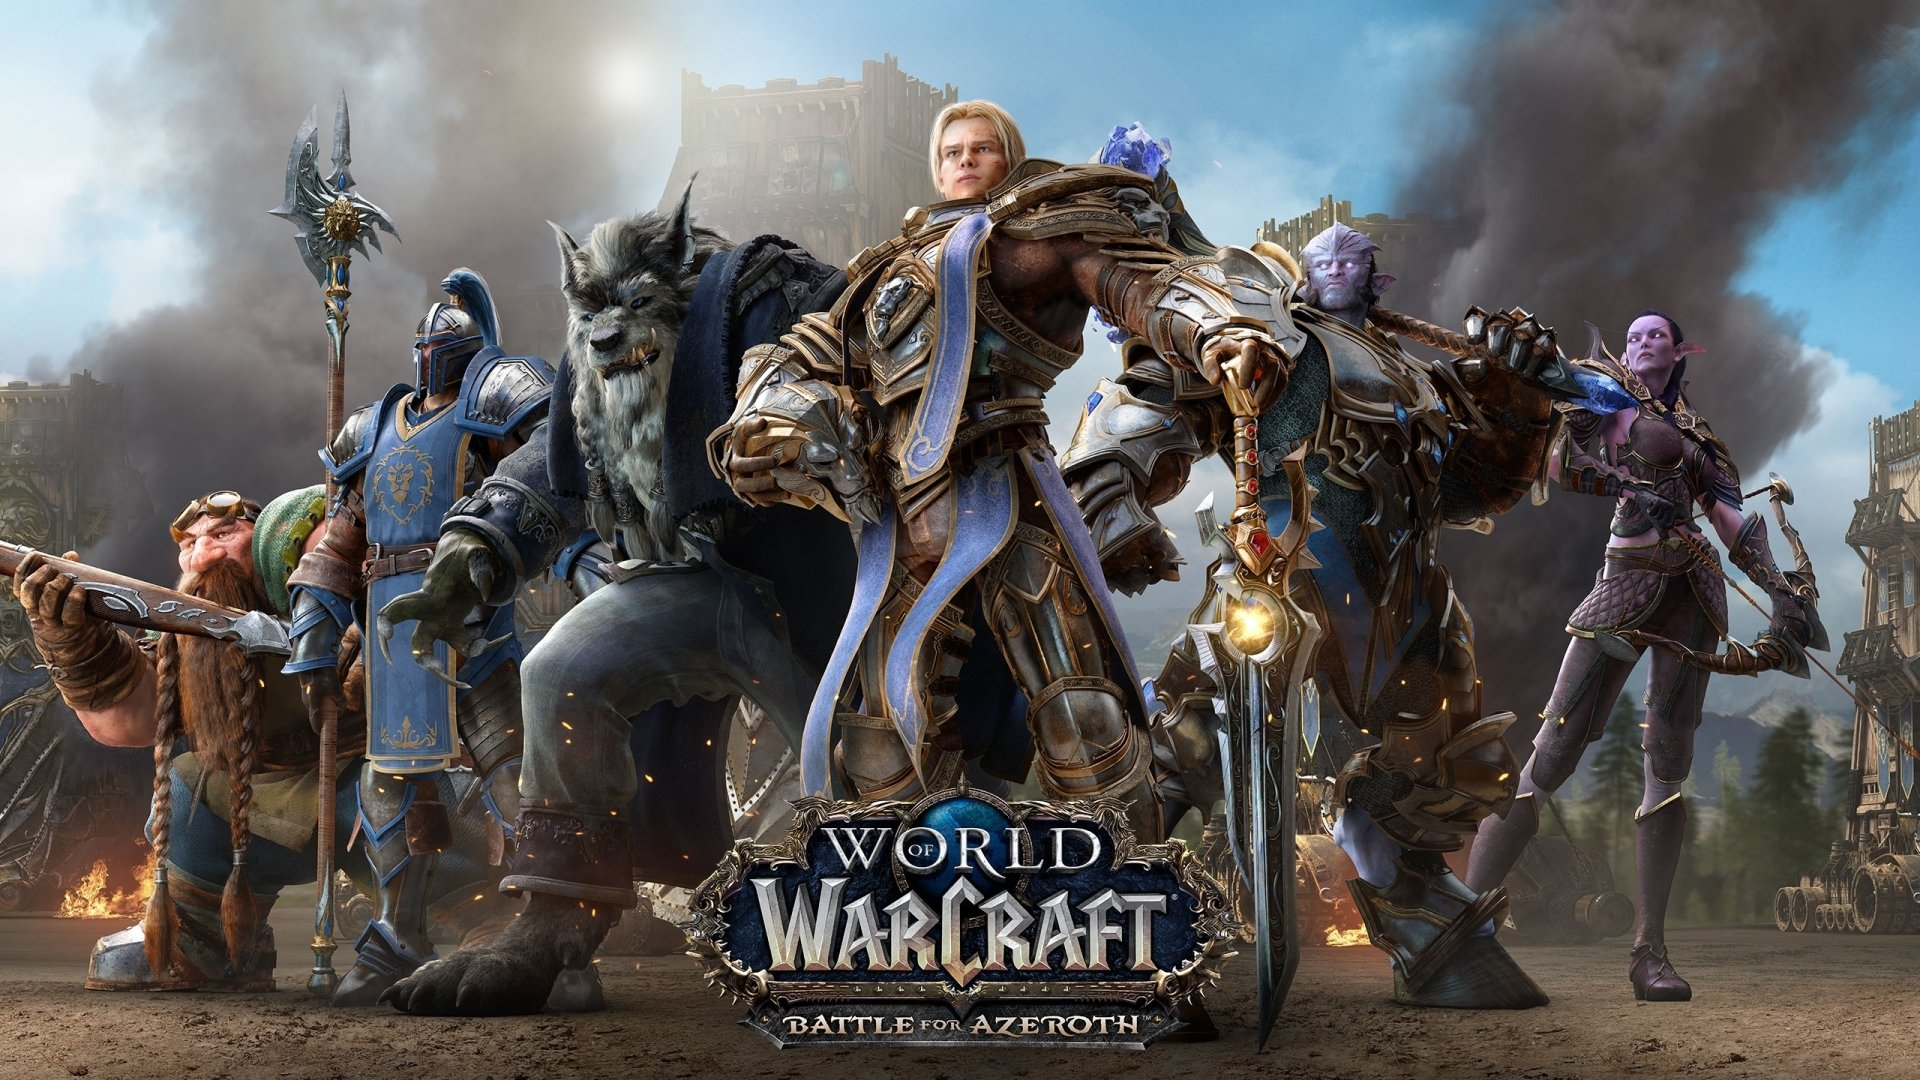 Video Game - World of Warcraft: Battle for Azeroth  Wallpaper